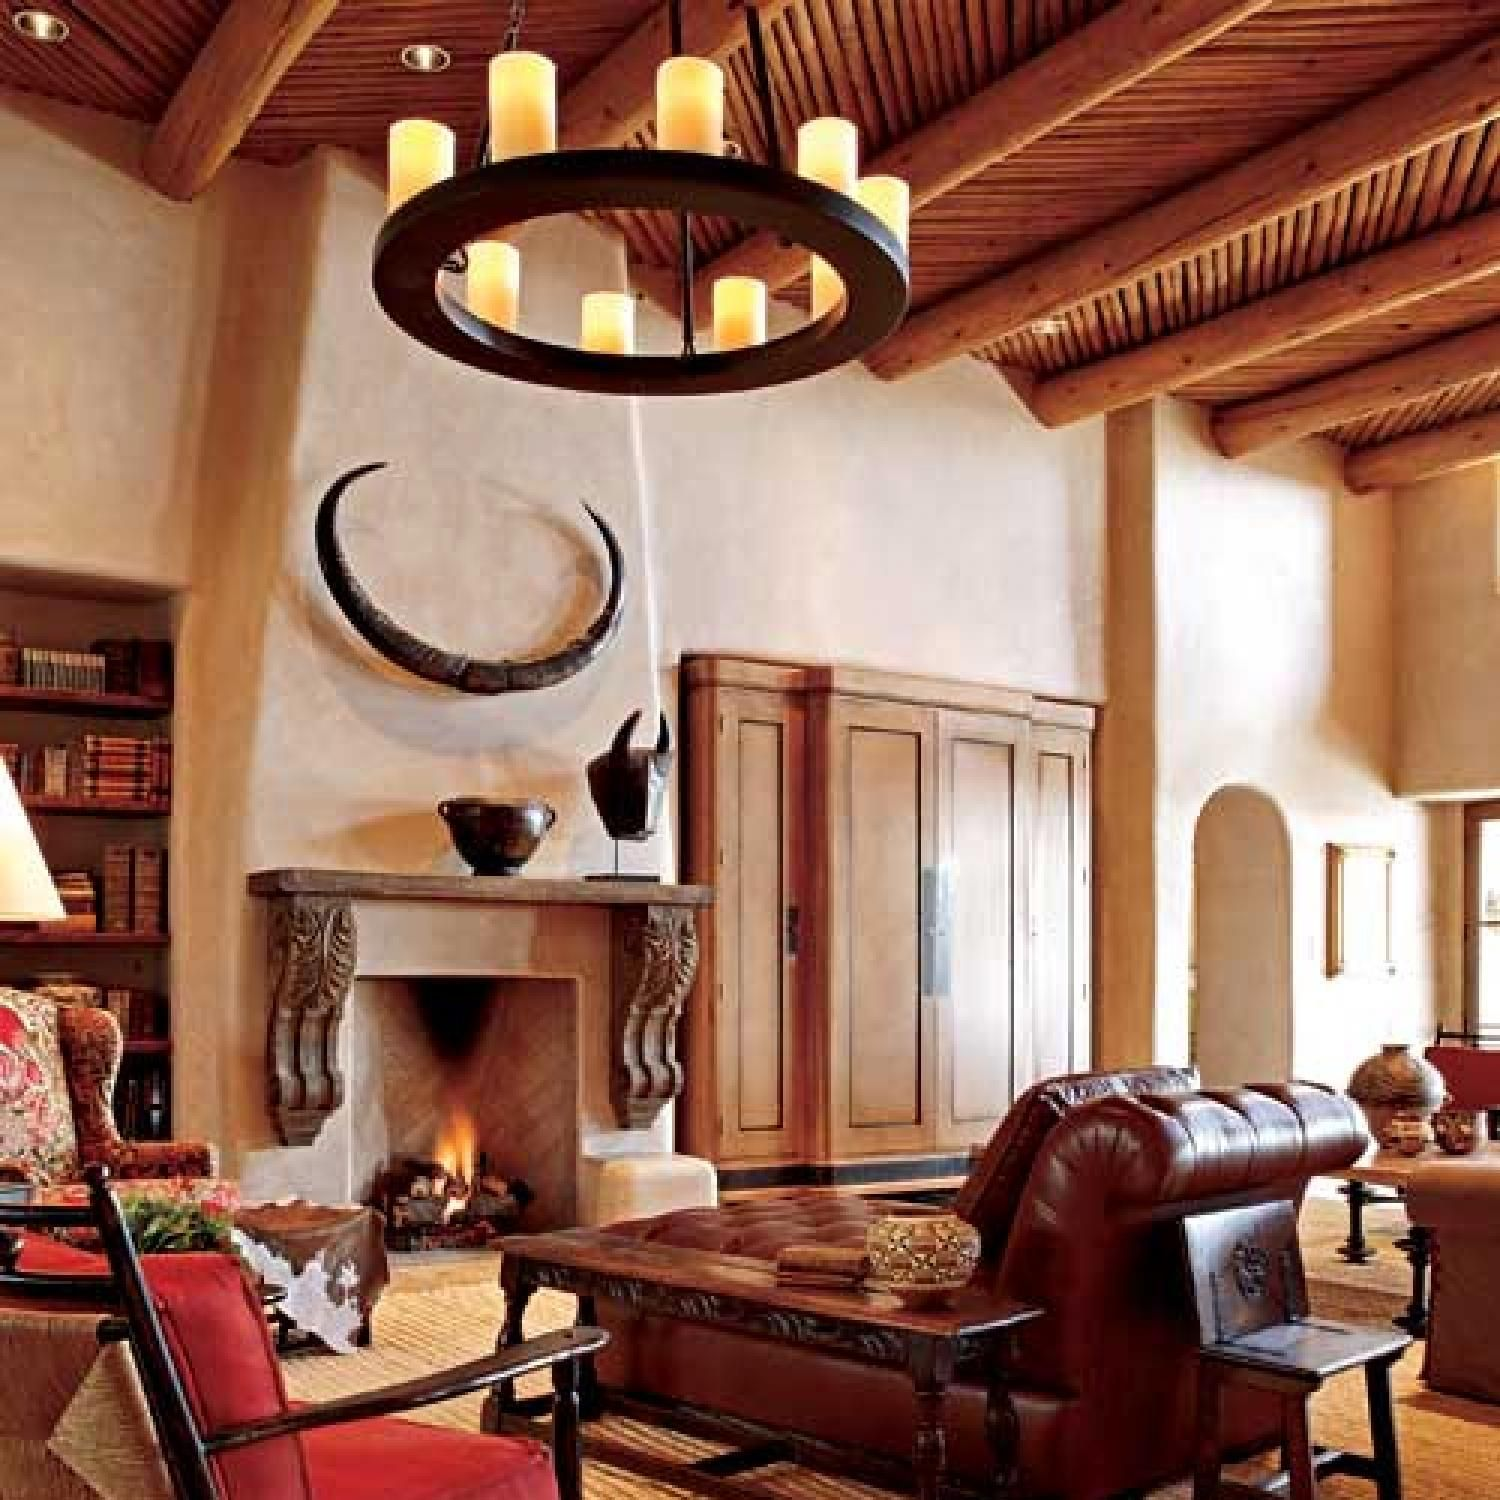 Pueblo Style Home With Traditional Southwestern Design Southwestern Design Home Decor Styles Western Home Decor #southwestern #style #living #room #furniture